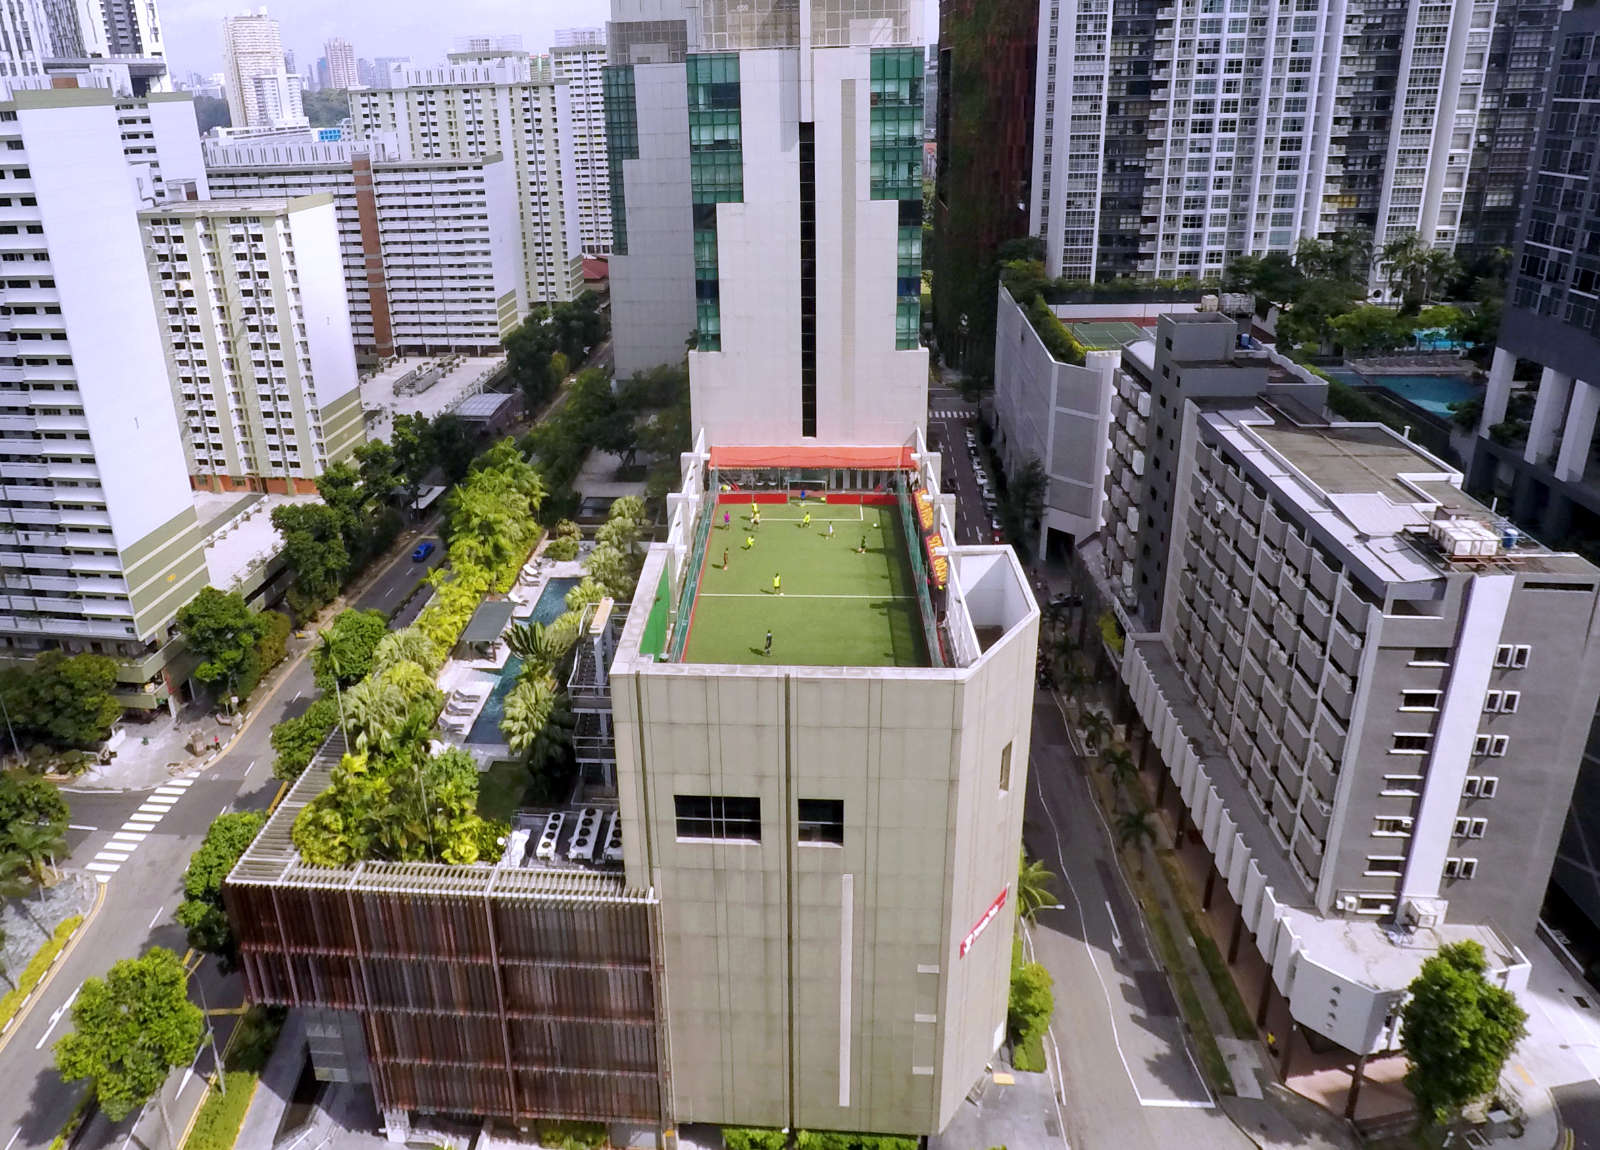 Rooftop Soccer - Mini-Pitch on a rooftop